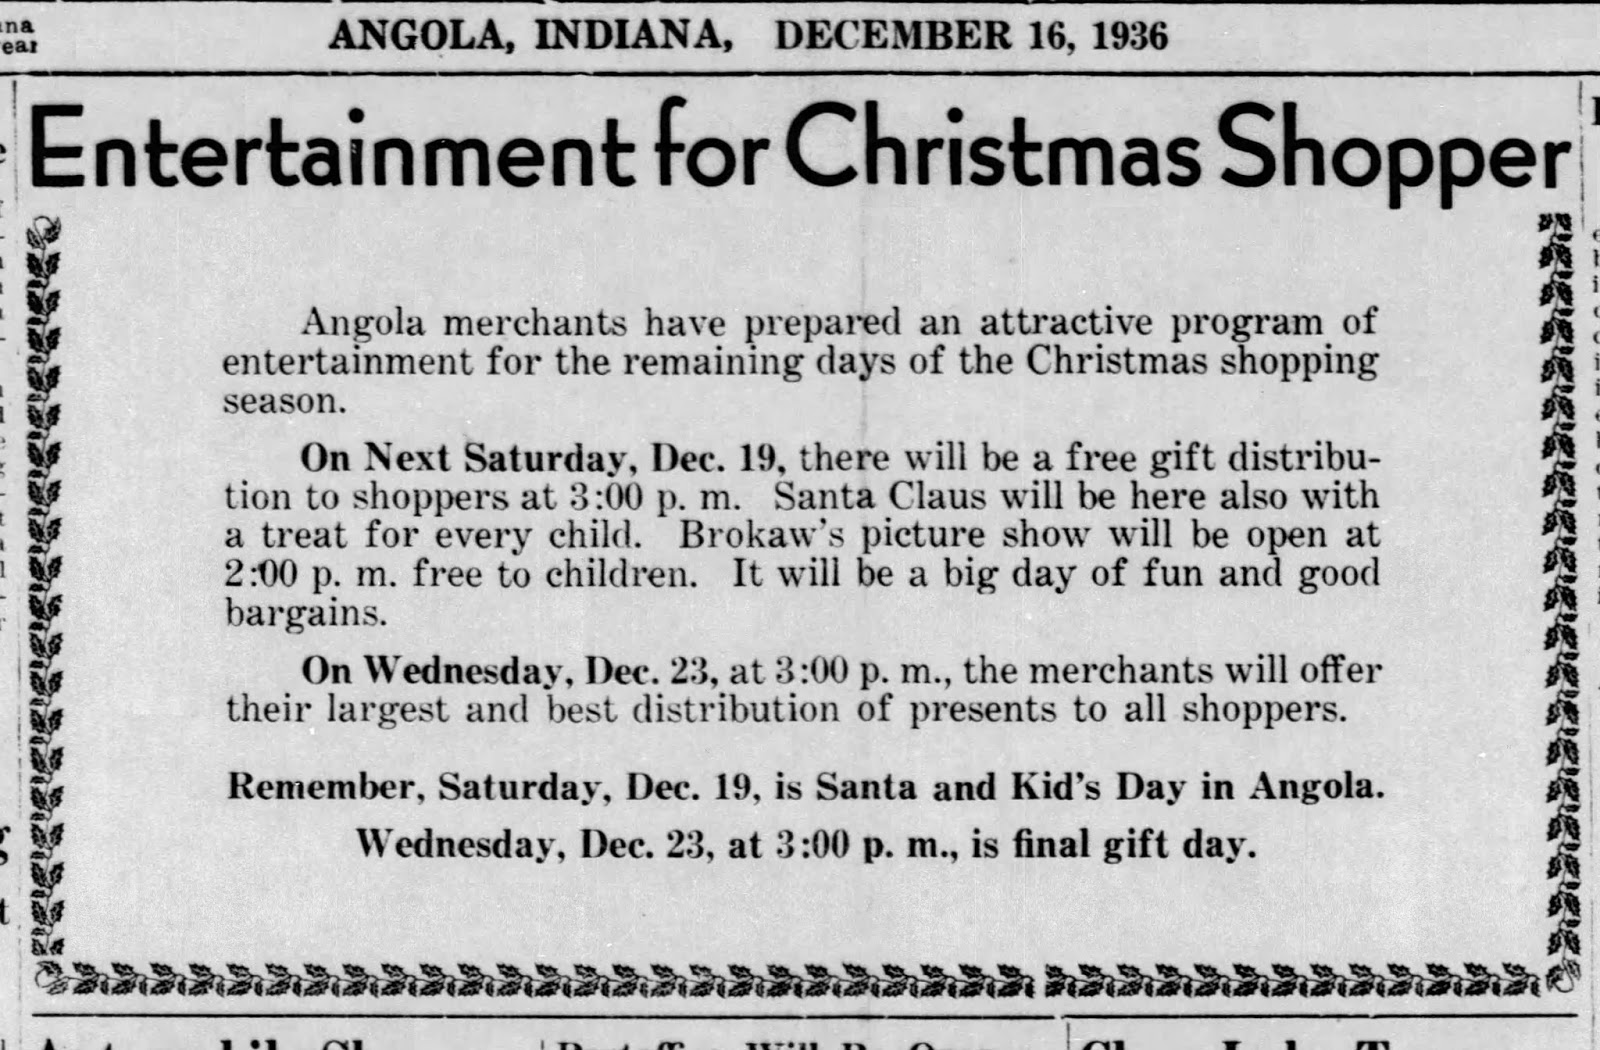 Steuben County Indiana: Through The Years: CHRISTMAS IN ANGOLA 1936